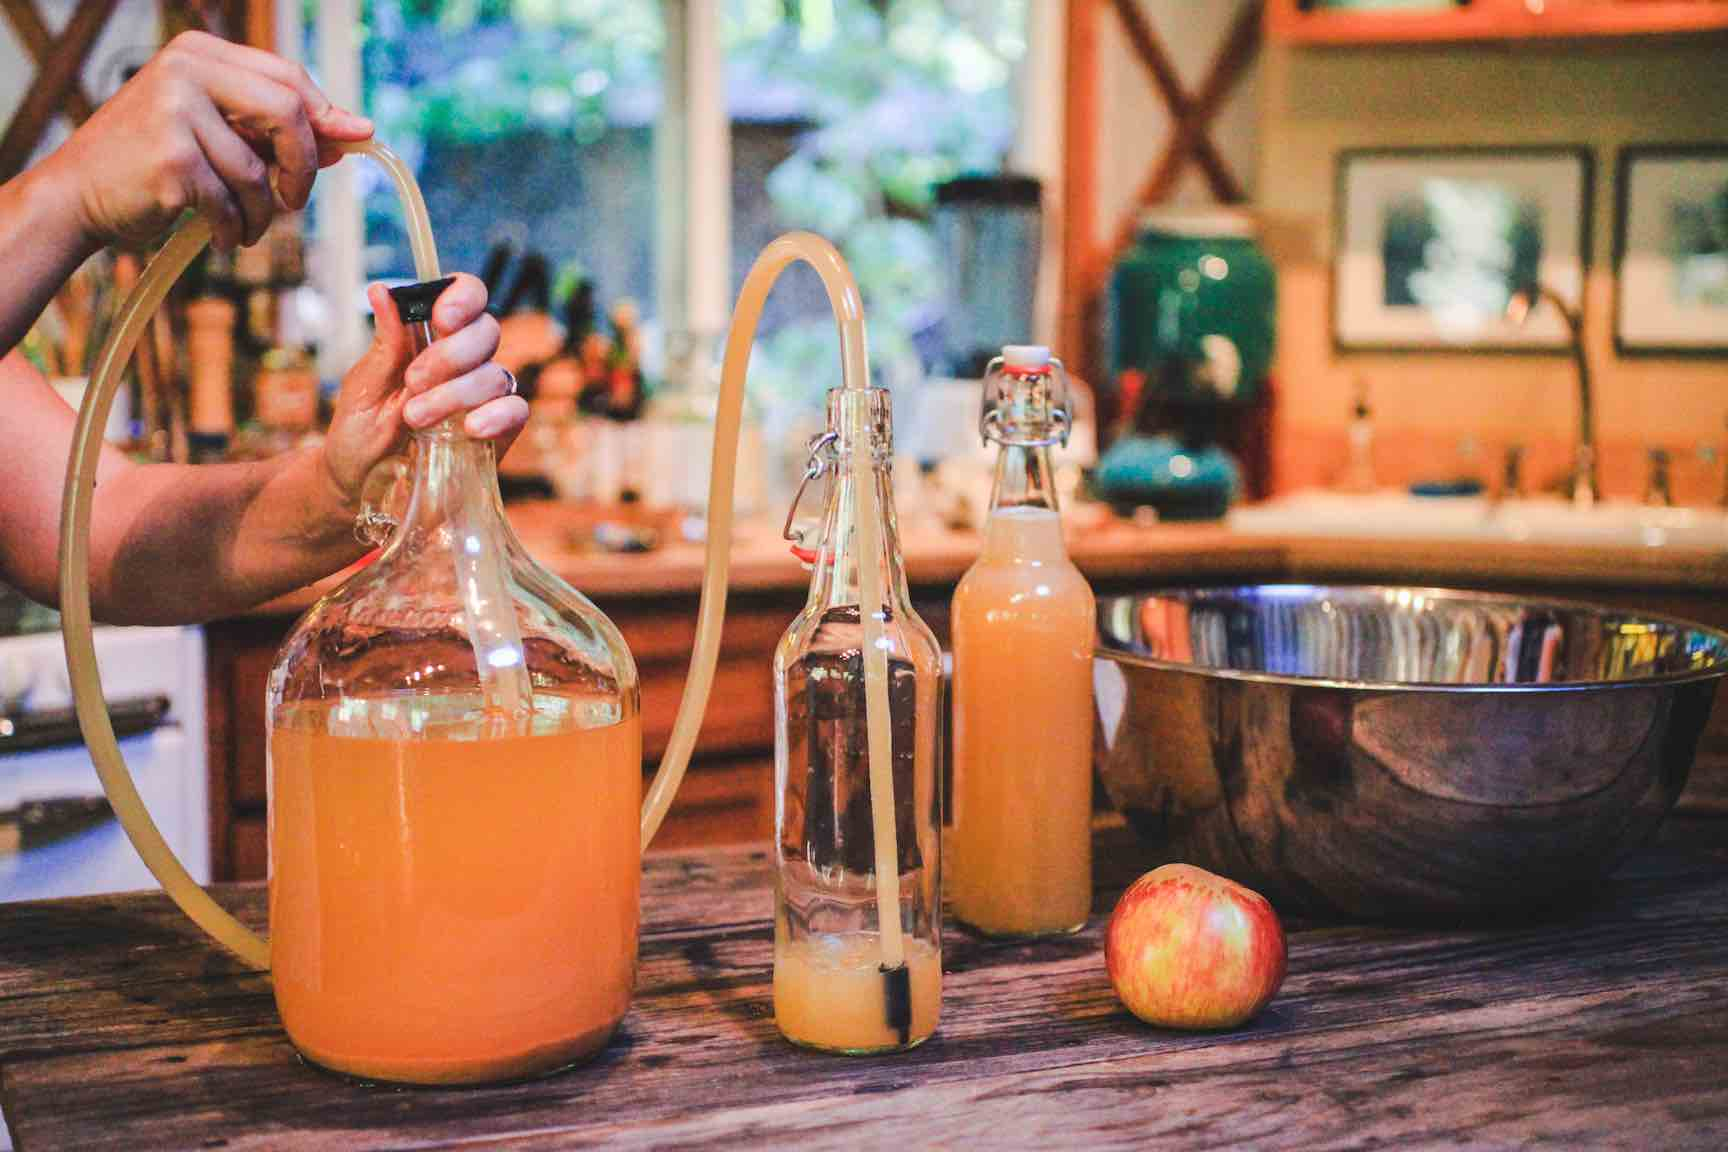 Cider Brewing from Scratch with Stefano Baggio at The Artisan's Bottega (Photo Credit to Mountain Feed)